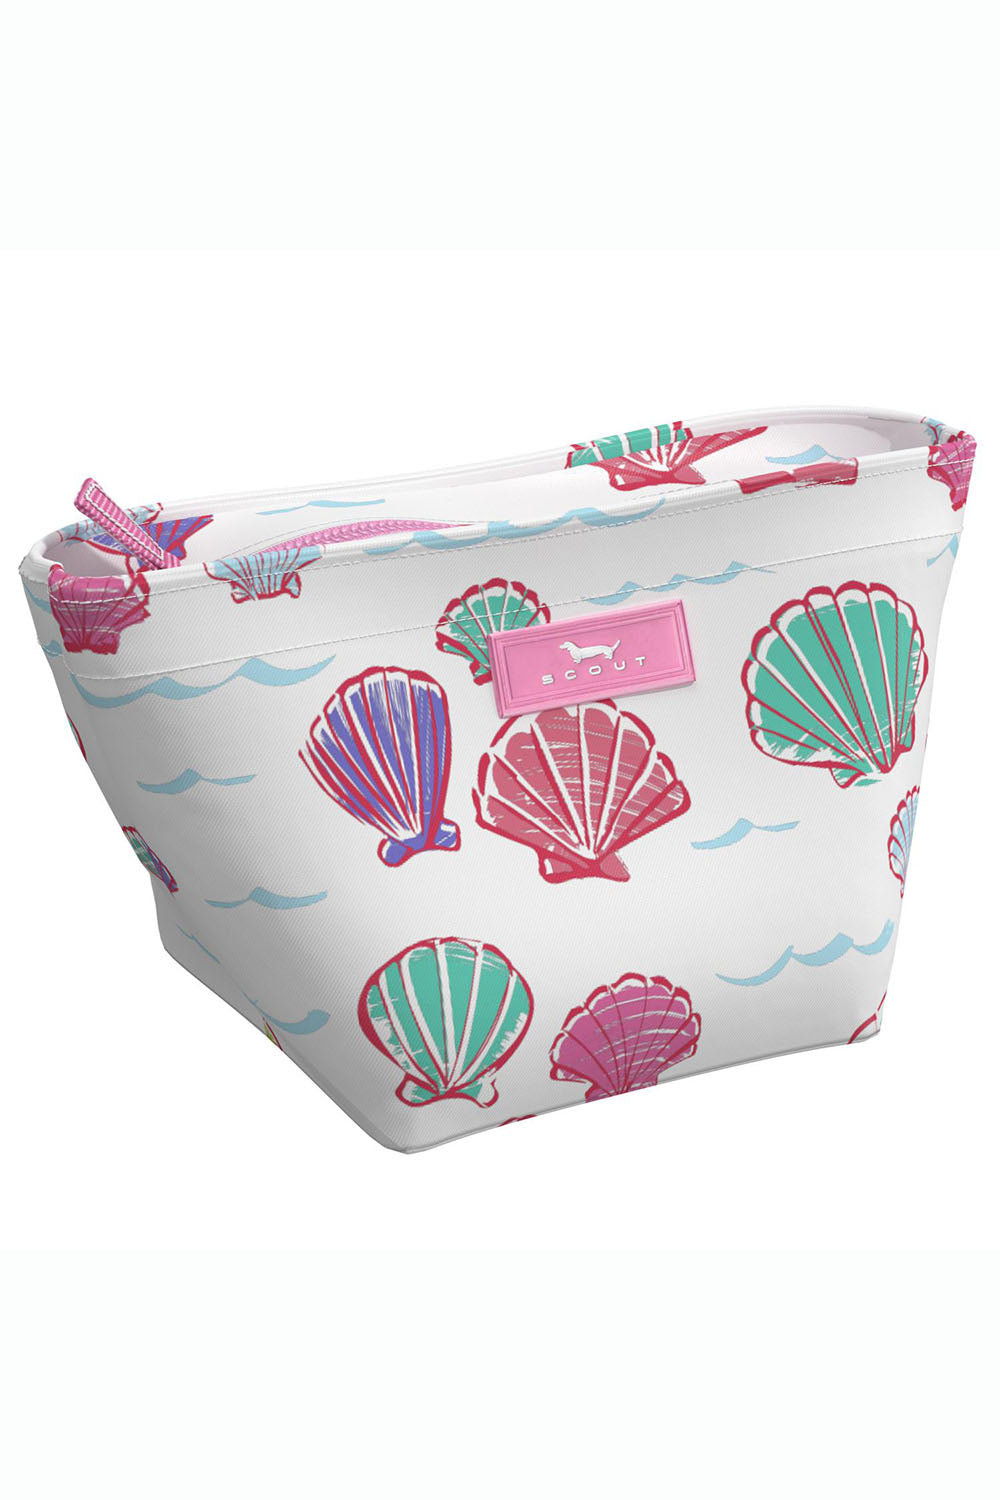 "Crown Jewels Cosmetic Case - ""Let's Shellabrate"" WYWH"